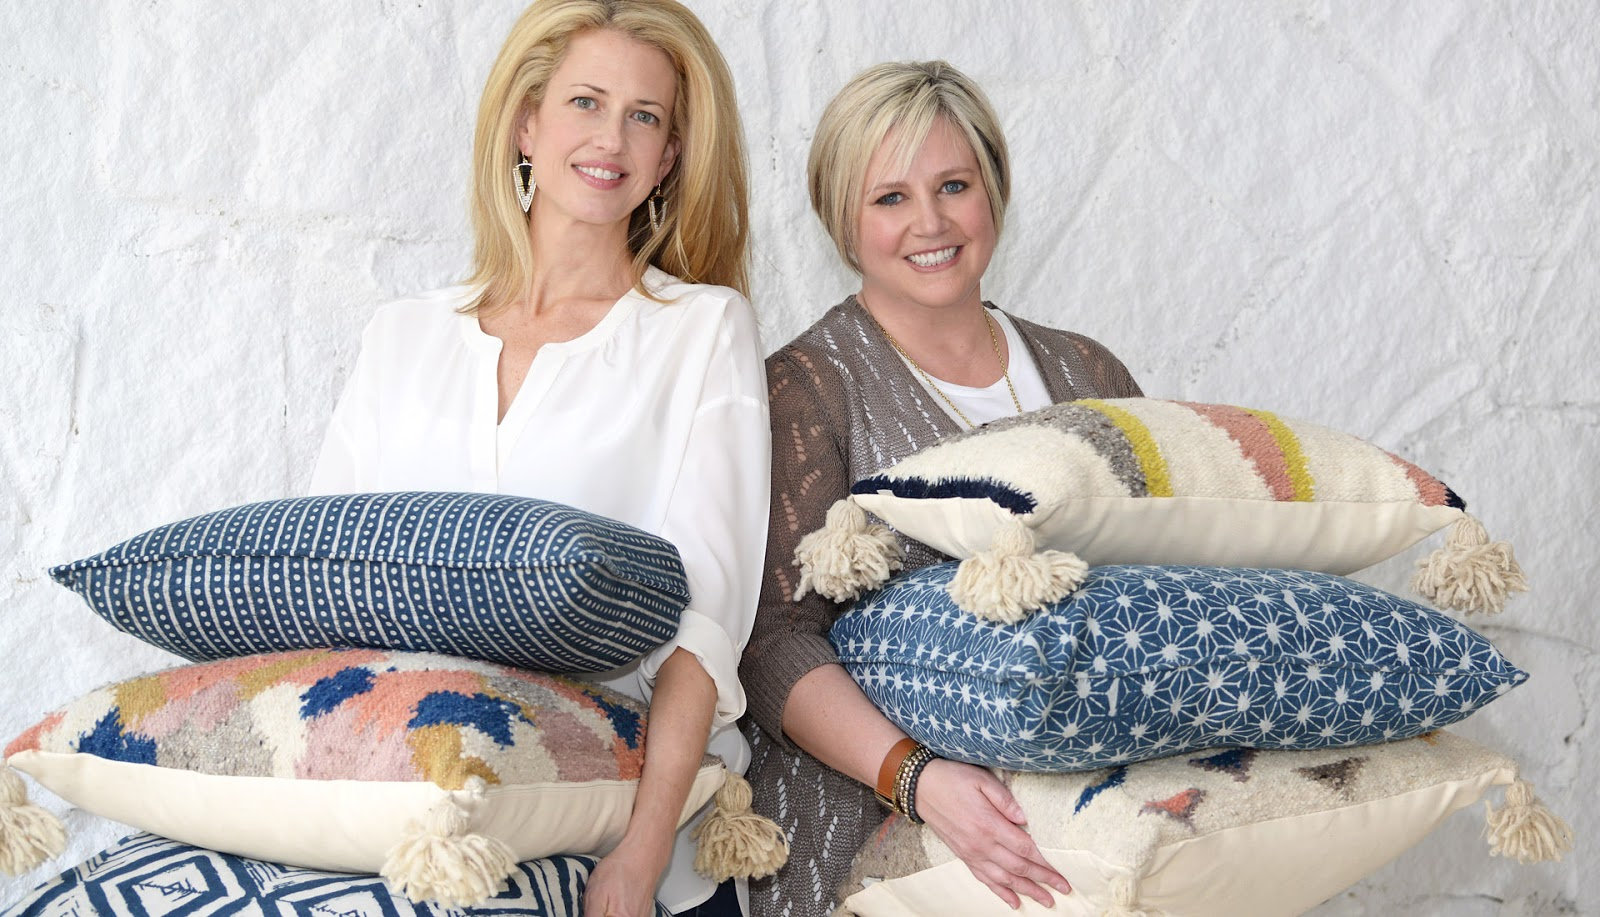 f20c884a9c9d9 ... new to the home textiles industry so it was no surprise that they hit  the scene with a loud bang with they launched their lifestyle brand Dear  Keaton.